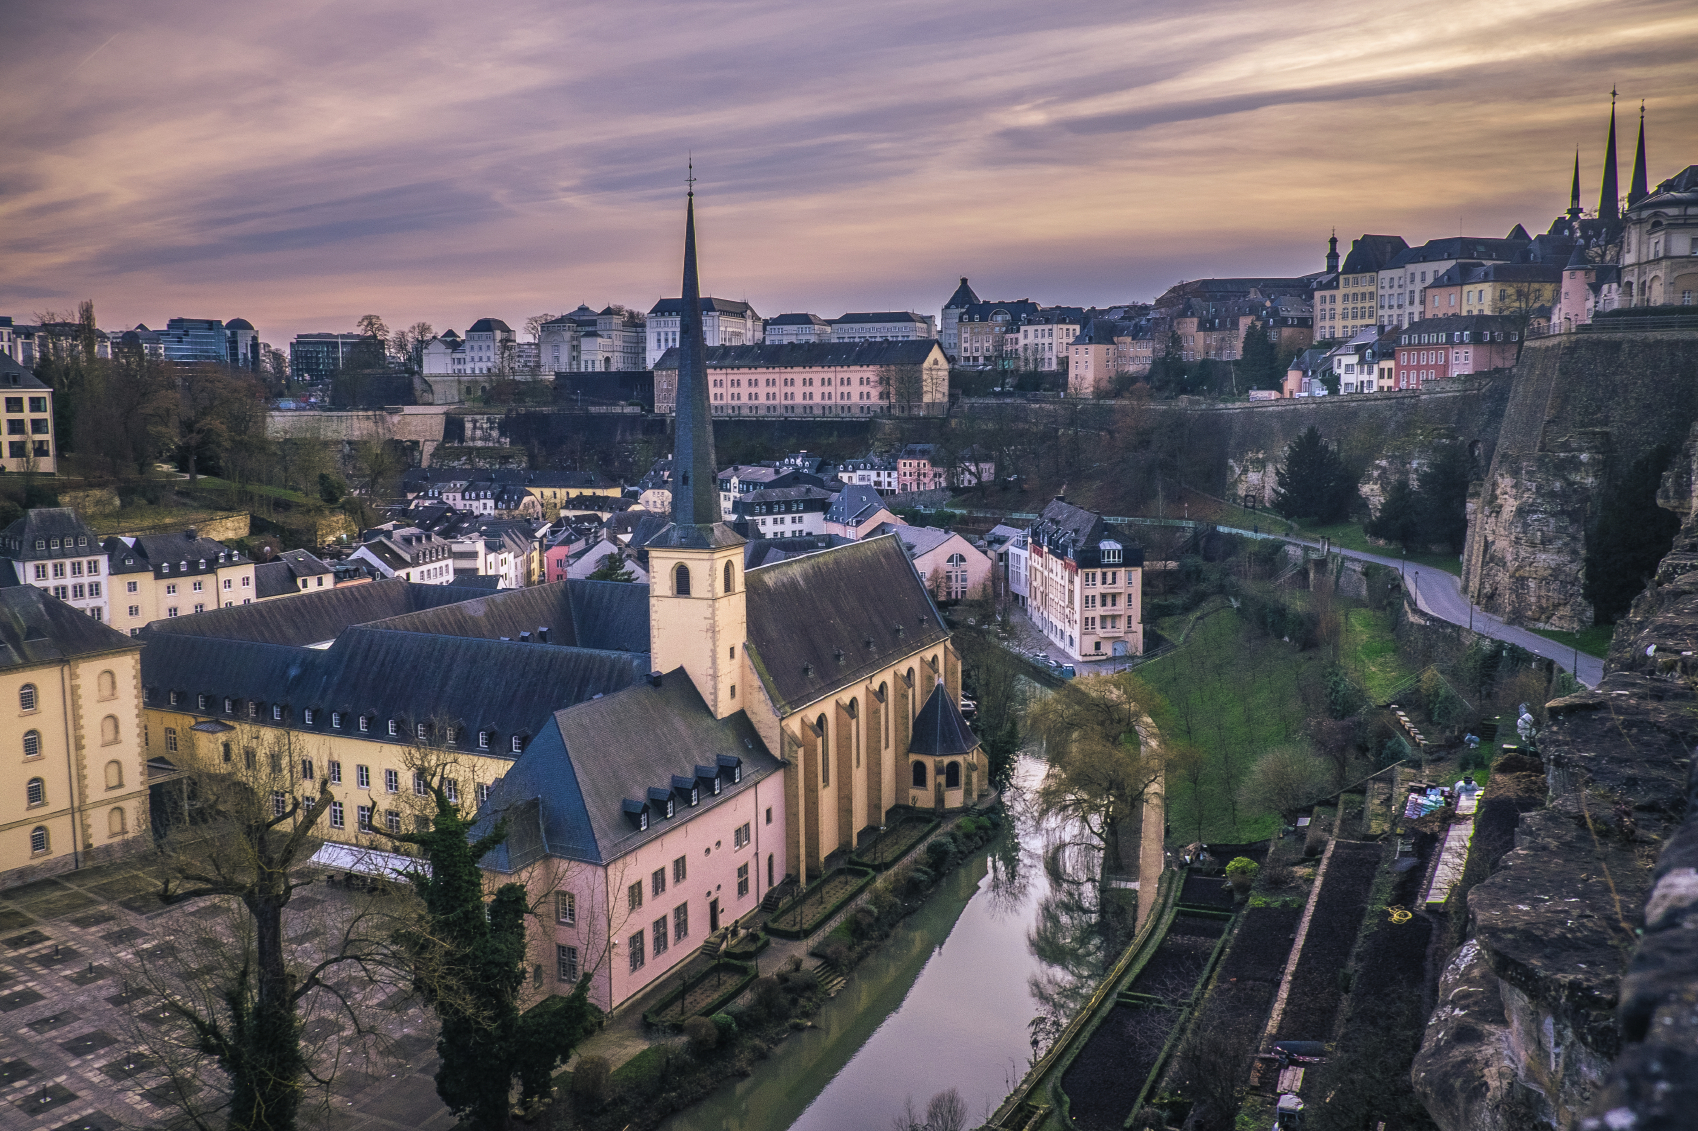 Prochains cours d'initiation au luxembourgeois (24 heures)